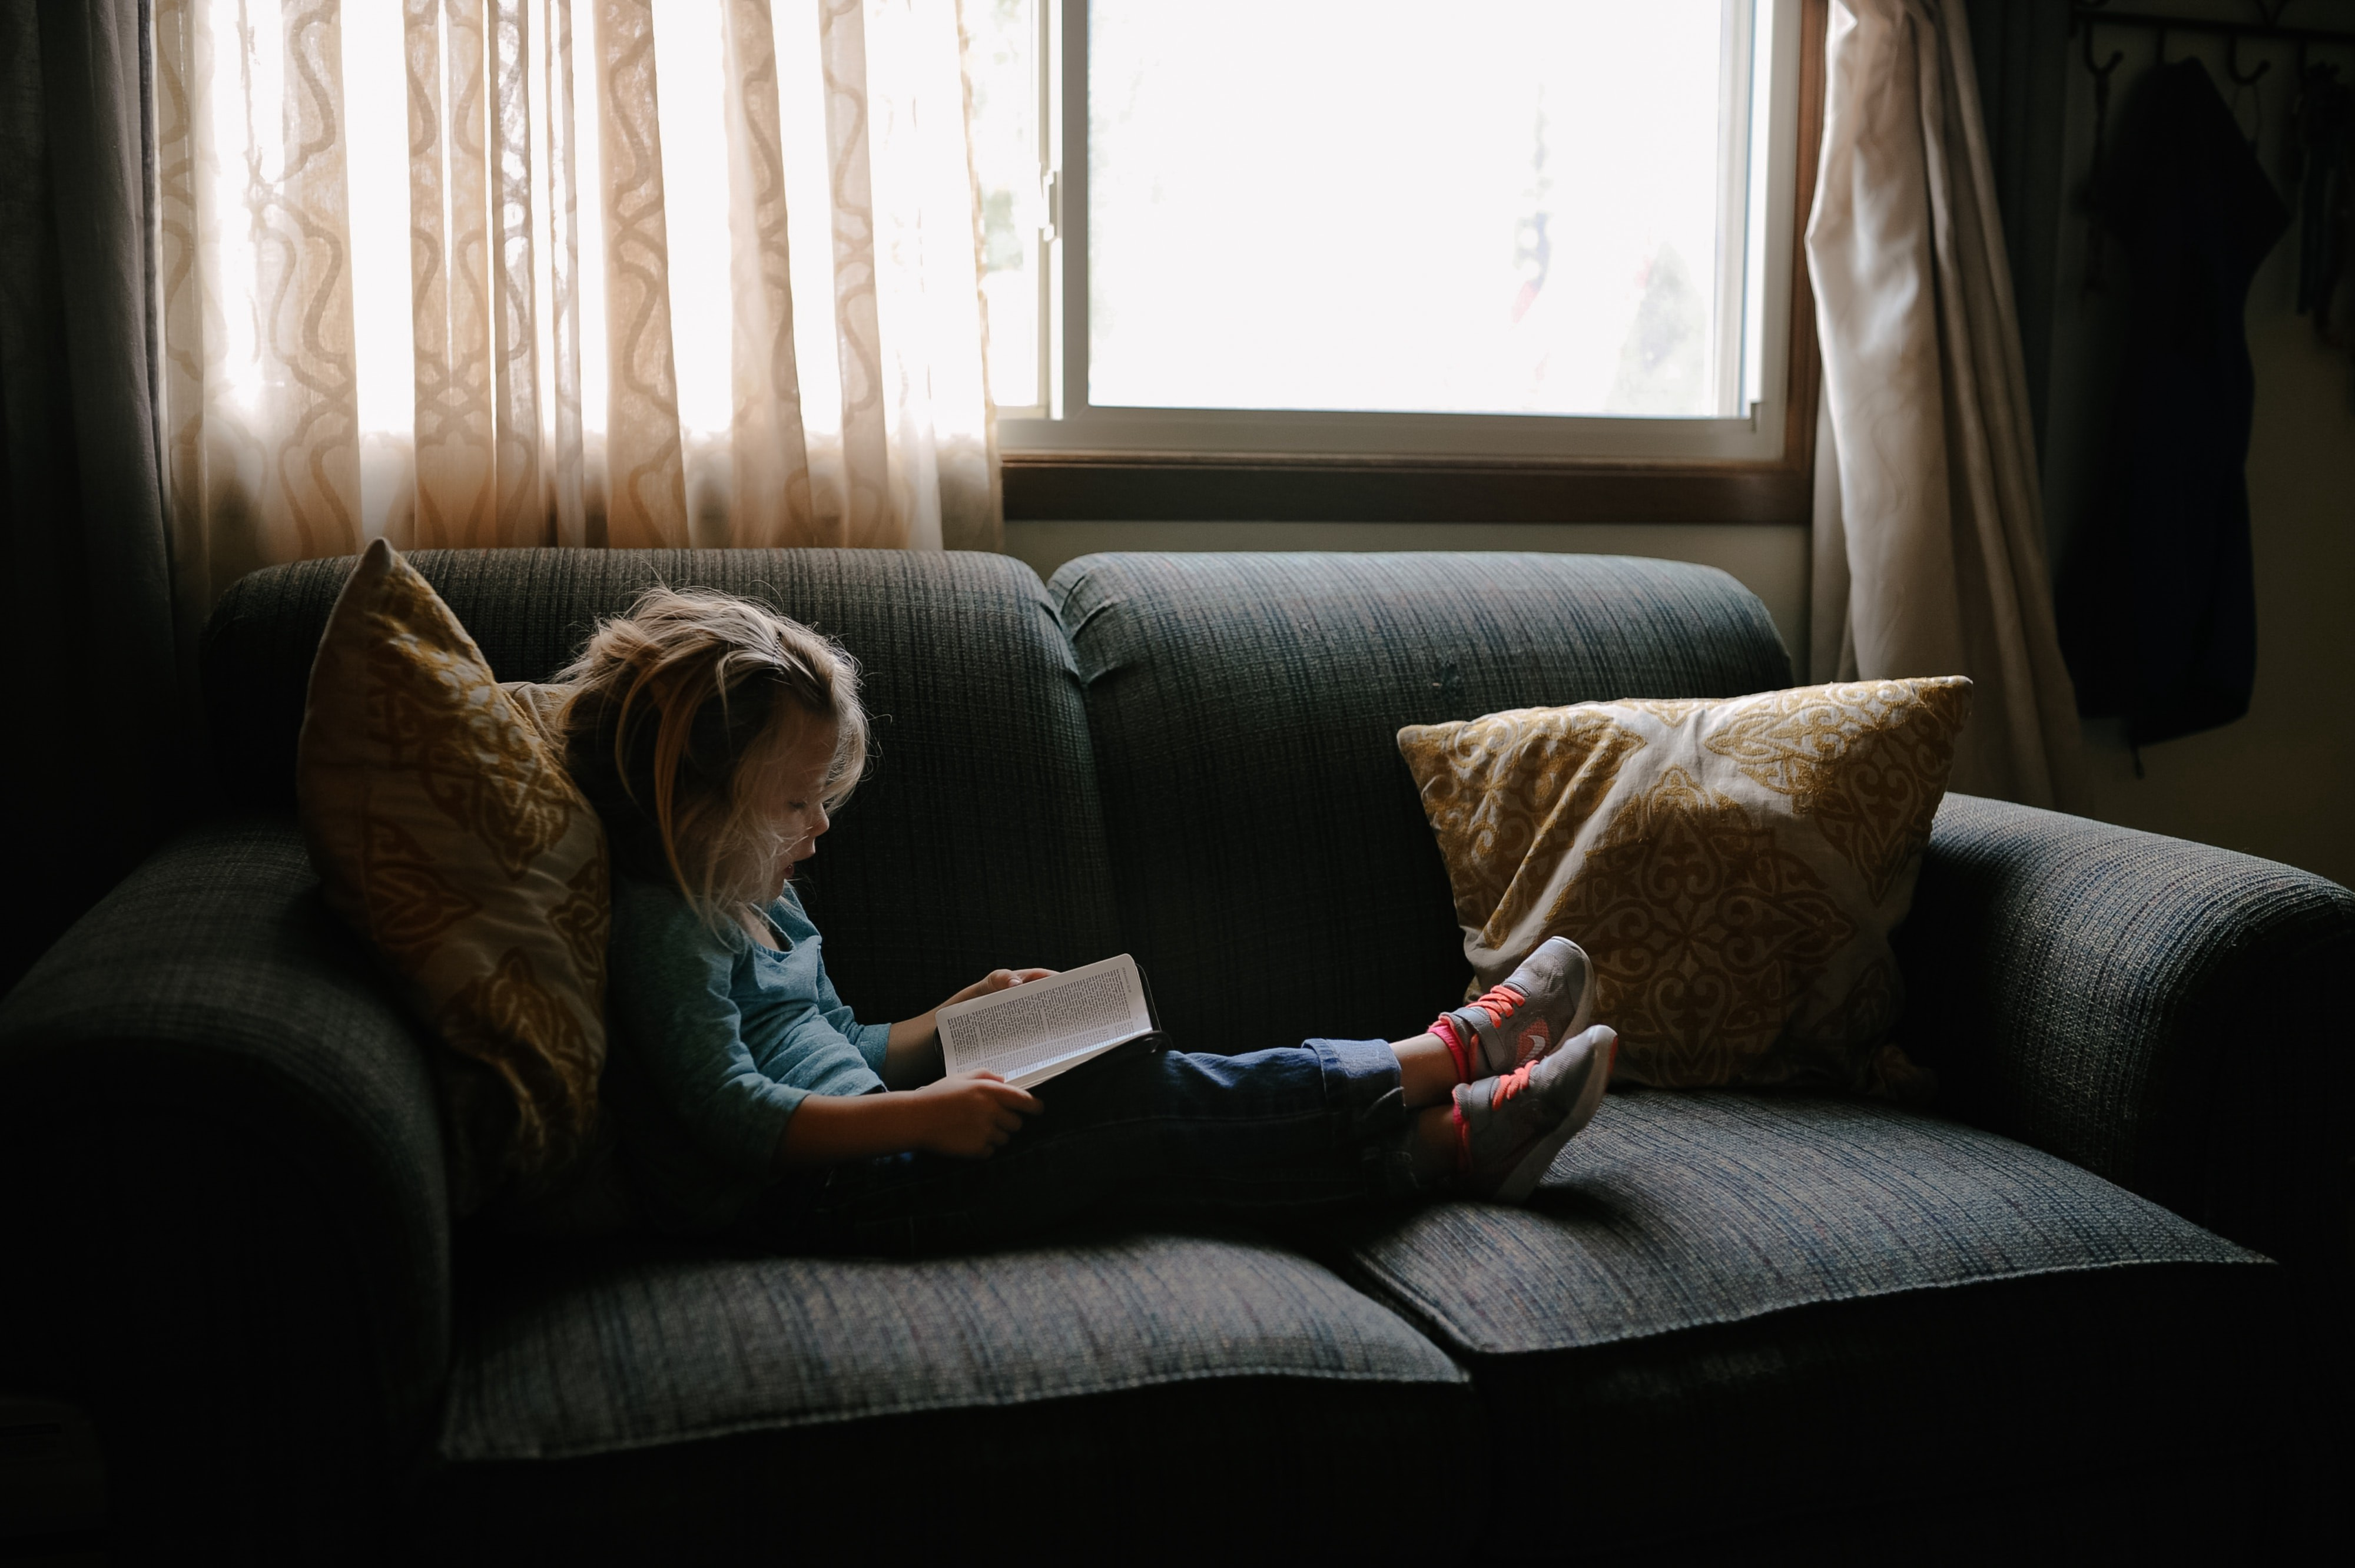 Blond child reclines on a couch with shoes on, looking at a text-heavy book.